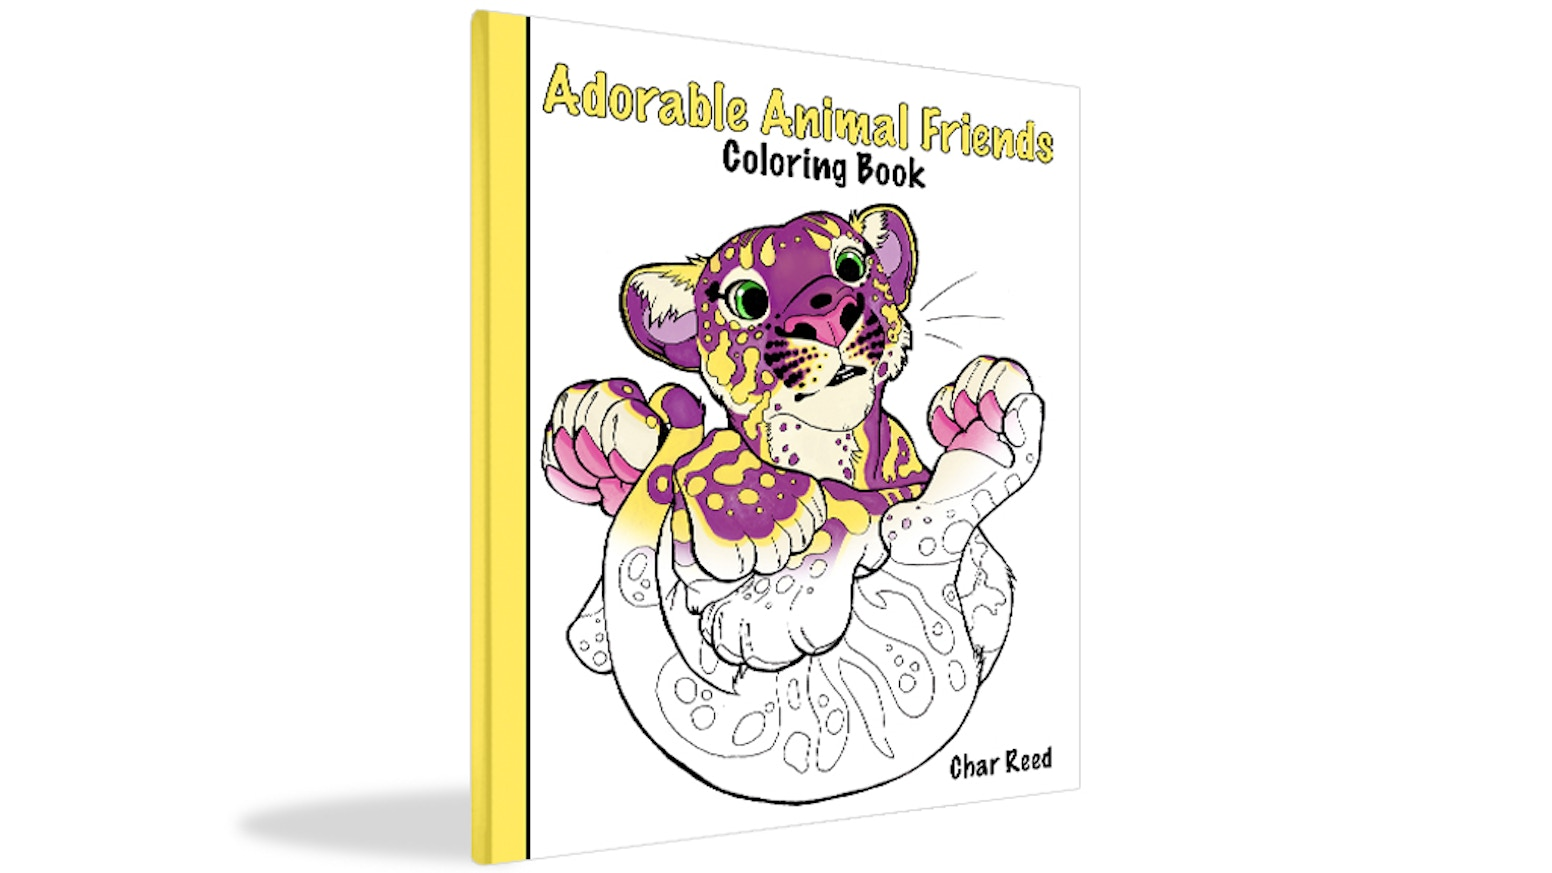 Adorable Animal Friends Coloring Book by Char Reed — Kickstarter